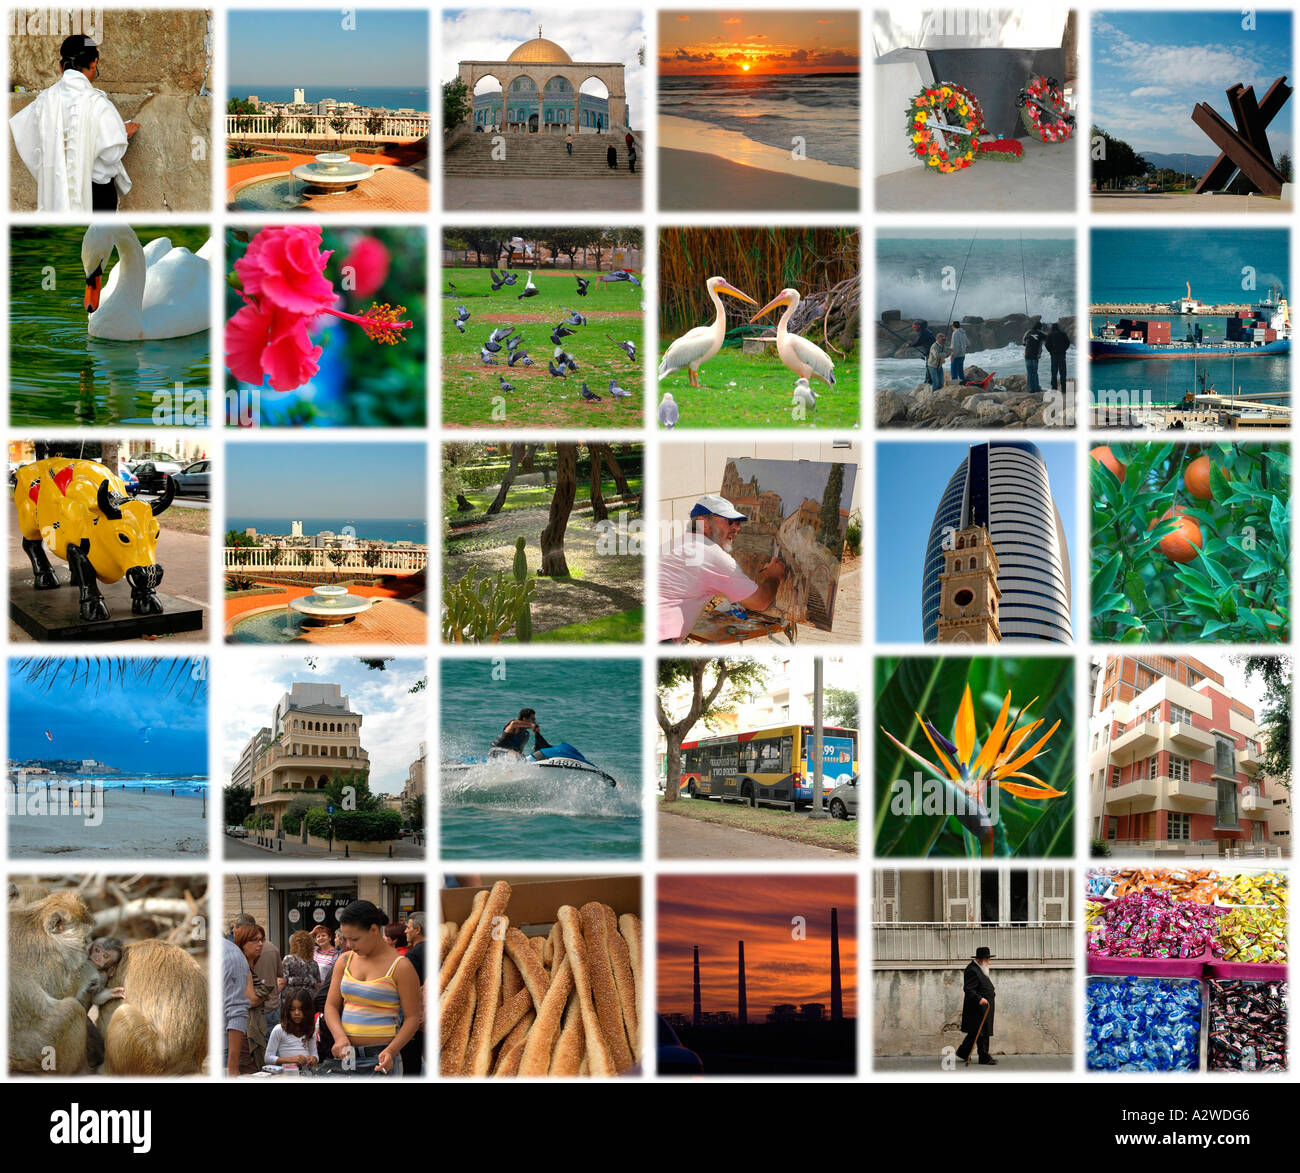 30 pictures of israel combined in a collage on a 5 by 6 array stock